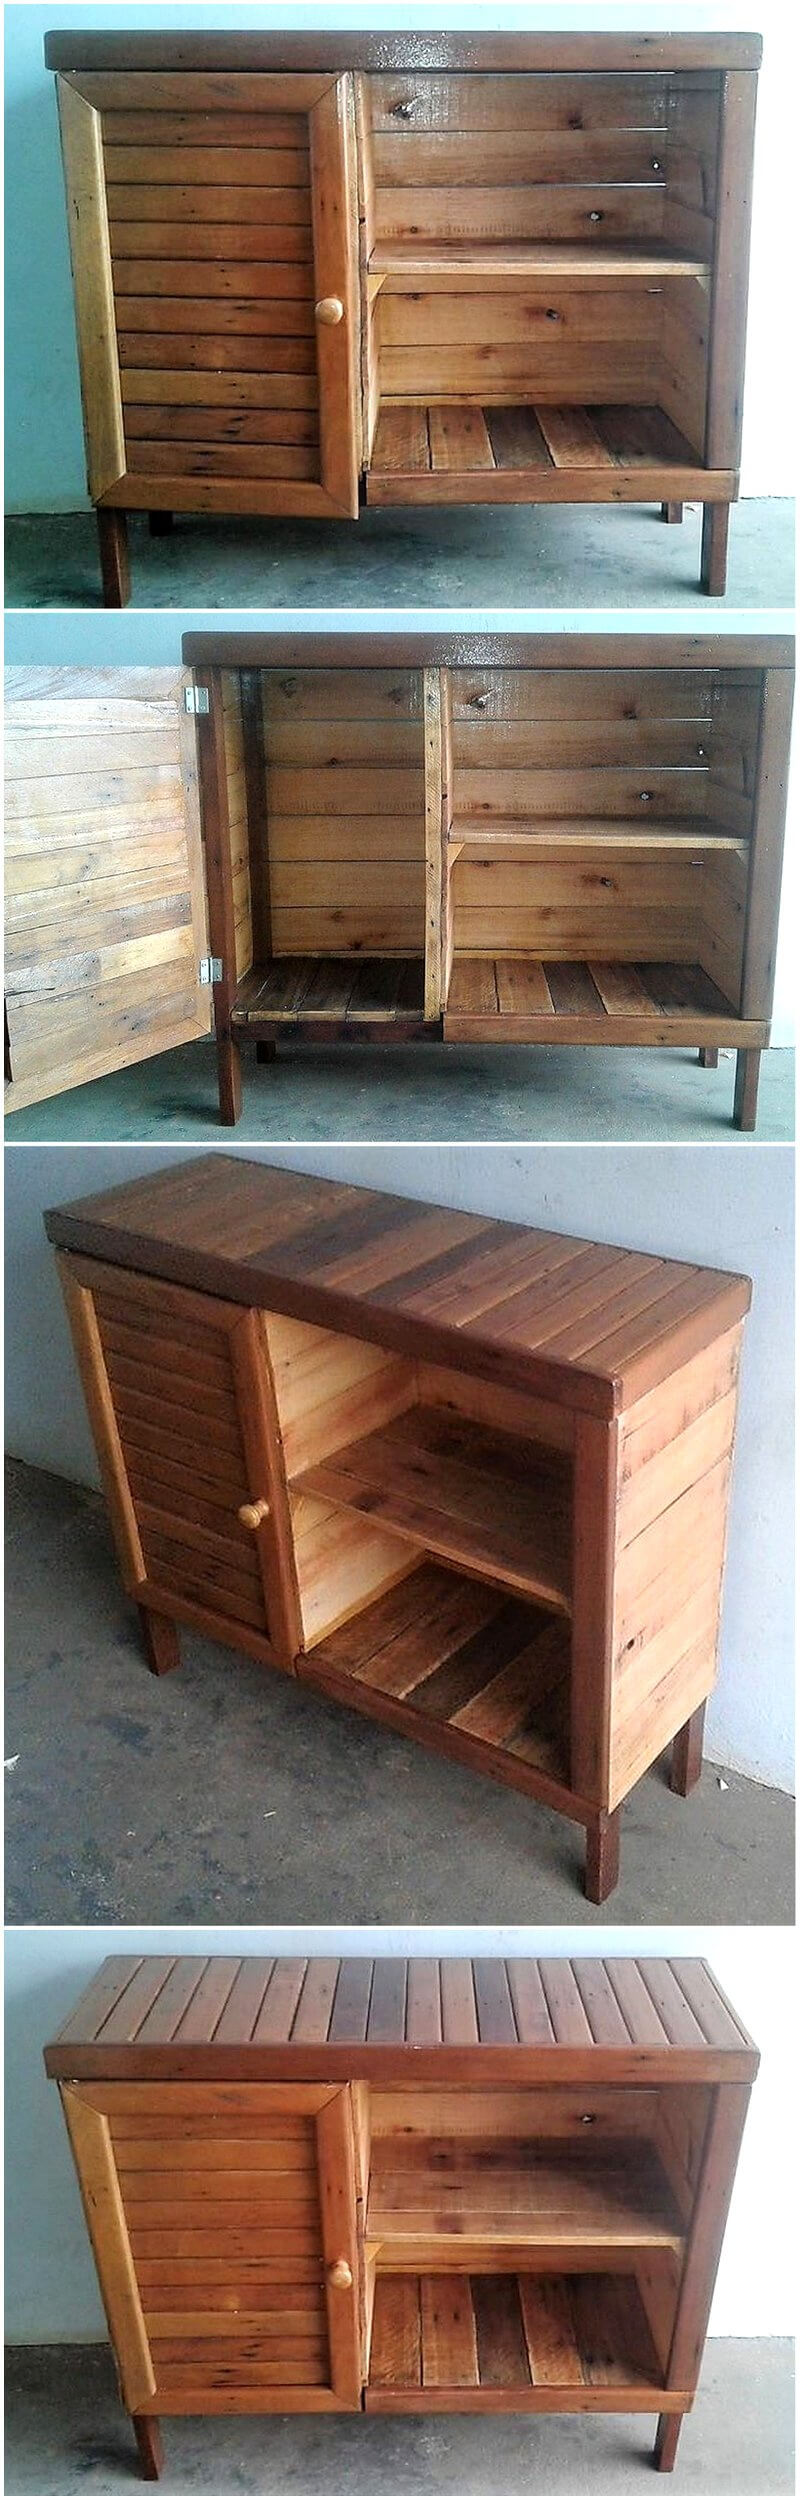 pallets wooden entryway table idea